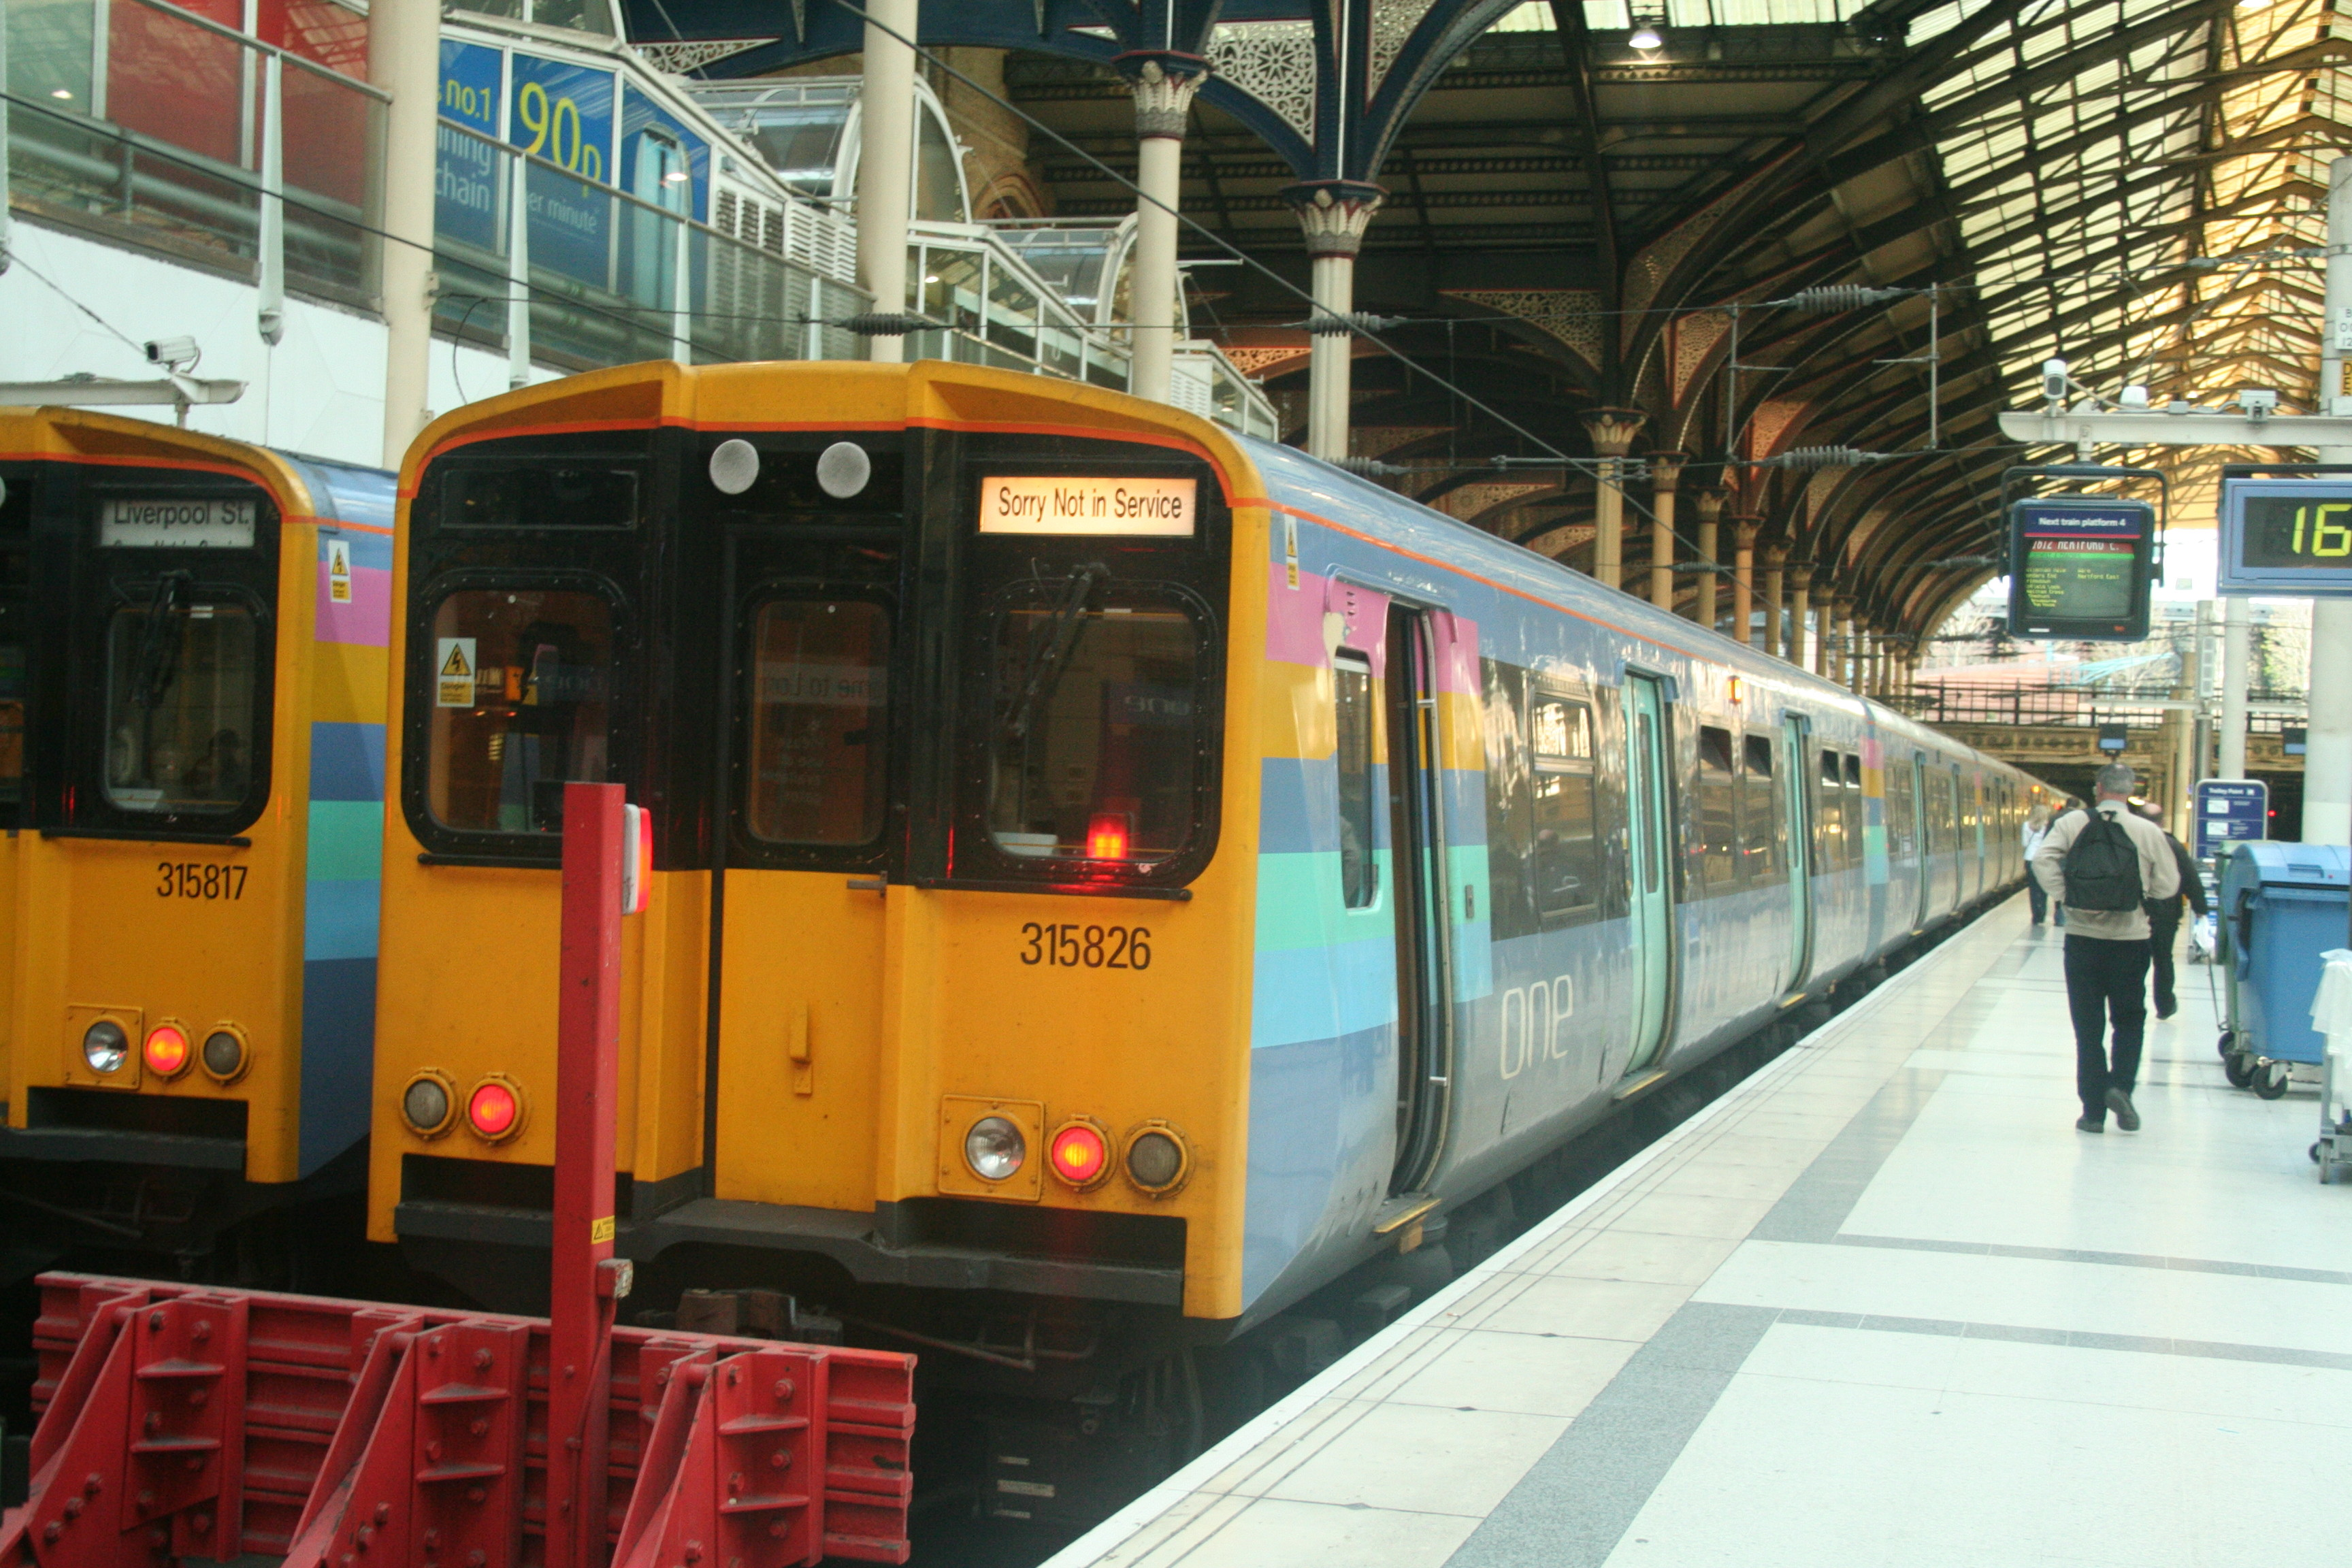 http://upload.wikimedia.org/wikipedia/commons/2/2f/Class_315s_at_London_Liverpool_Street.jpg